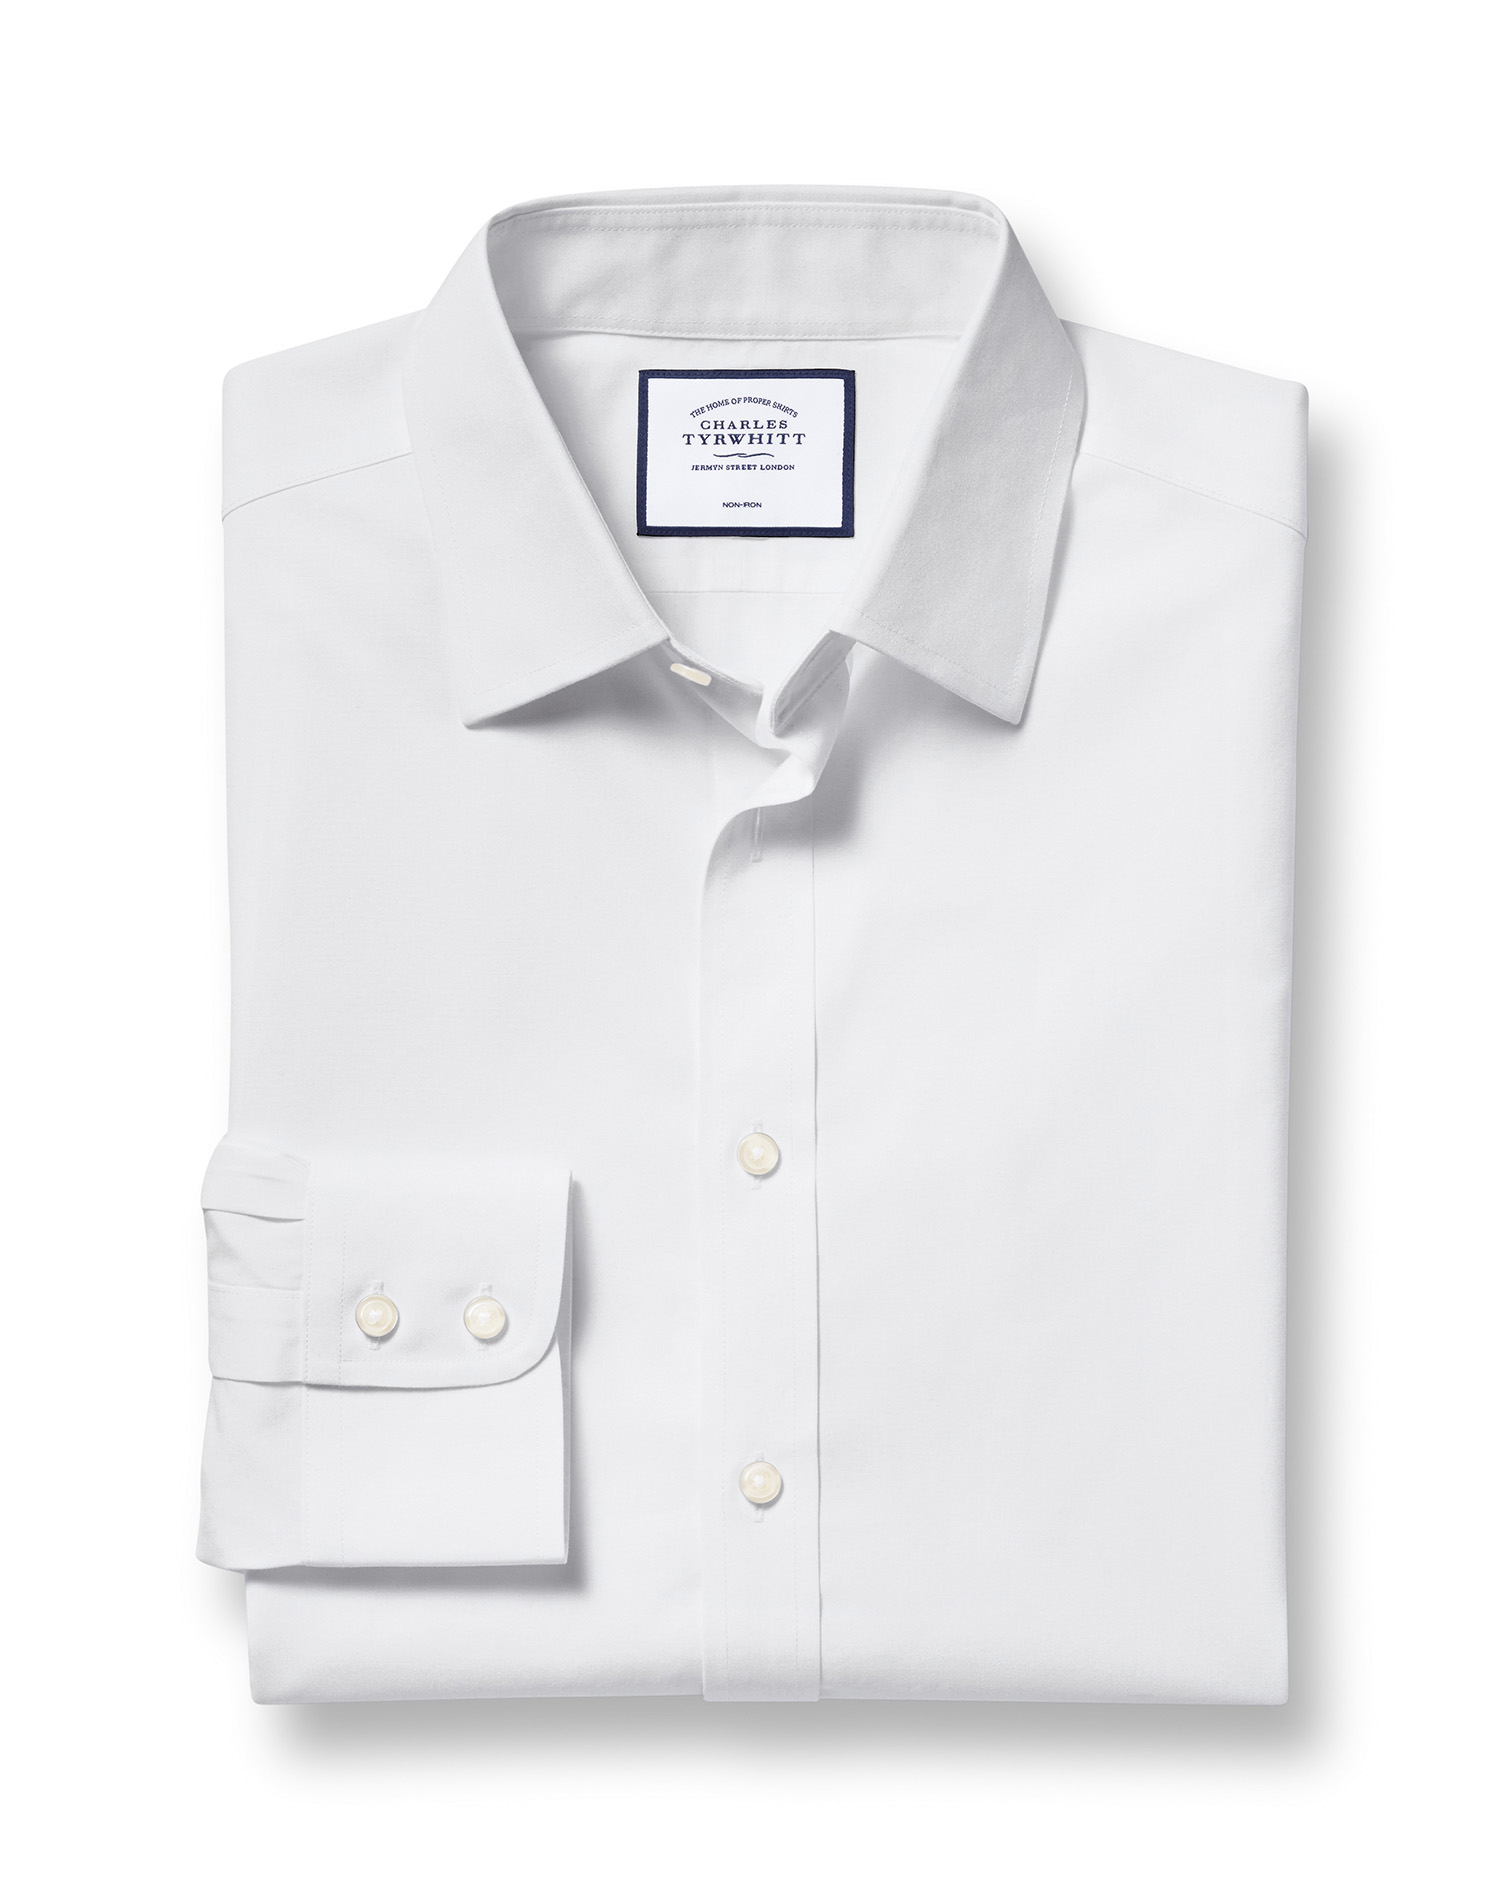 Extra Slim Fit Non-Iron Poplin White Cotton Formal Shirt Single Cuff Size 15/35 by Charles Tyrwhitt from Charles Tyrwhitt